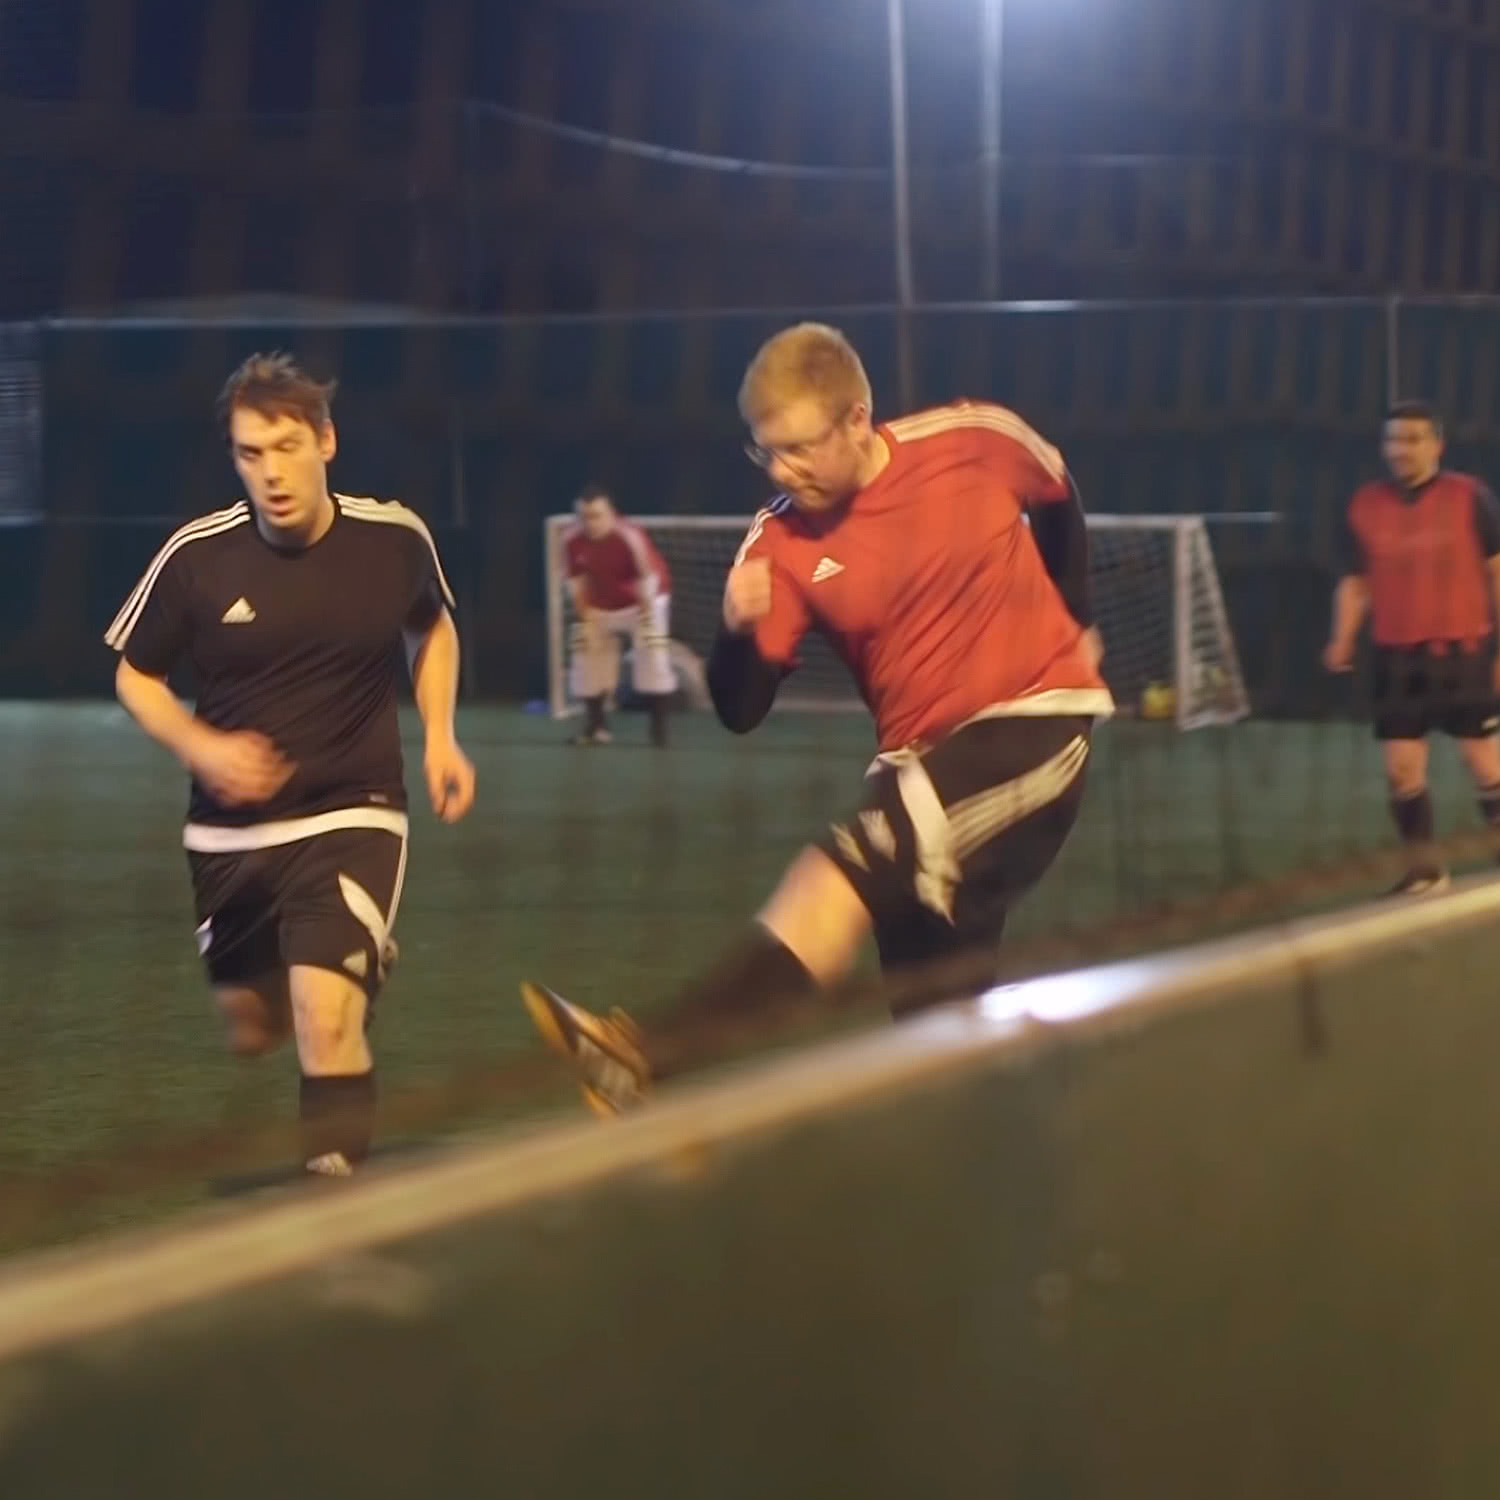 Men playing football at MAN V FAT